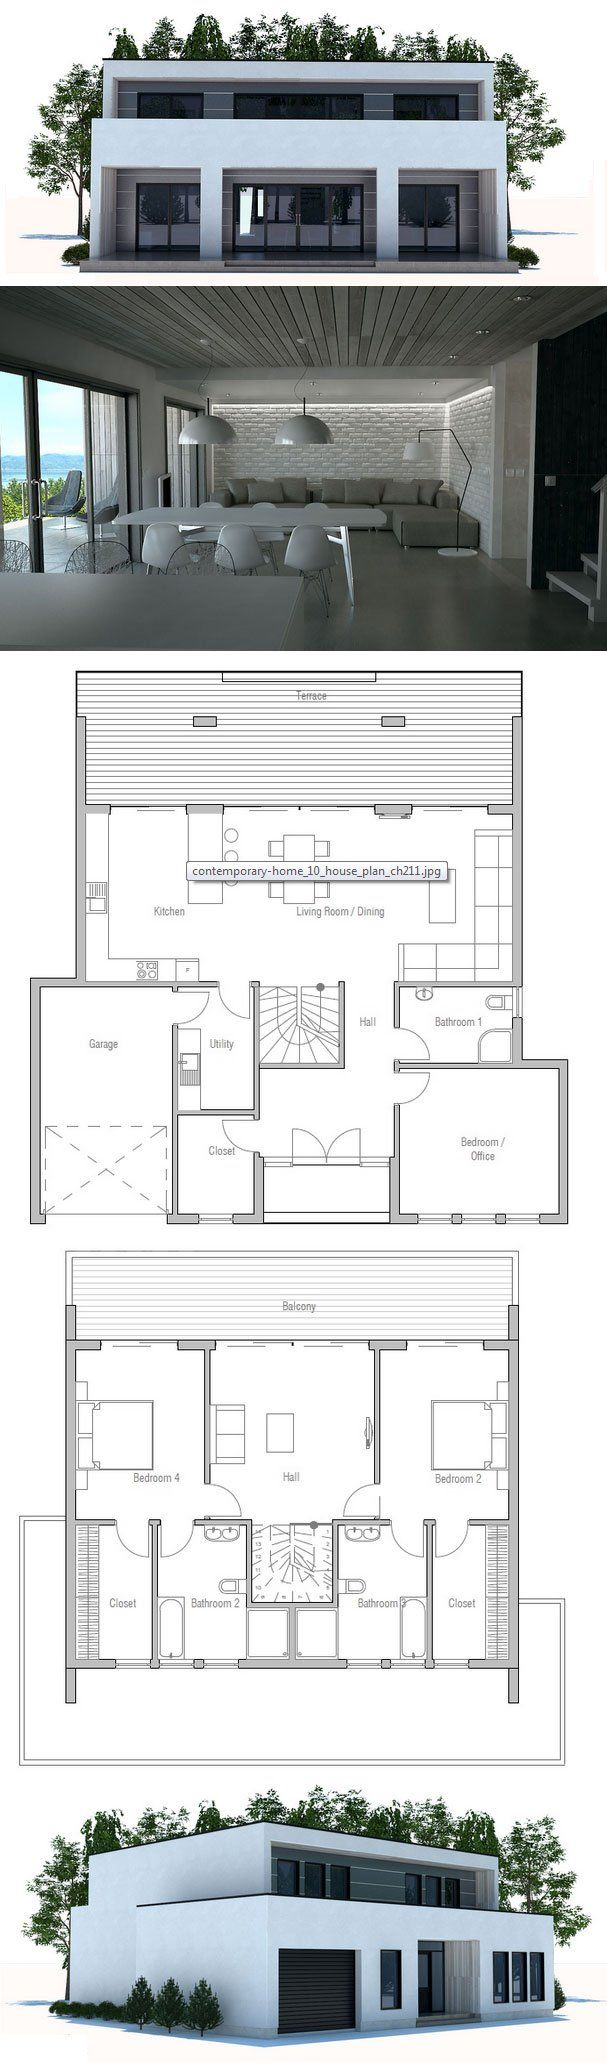 Modern Contemporary House Design to small lot. Floor Plan ConceptHome.com